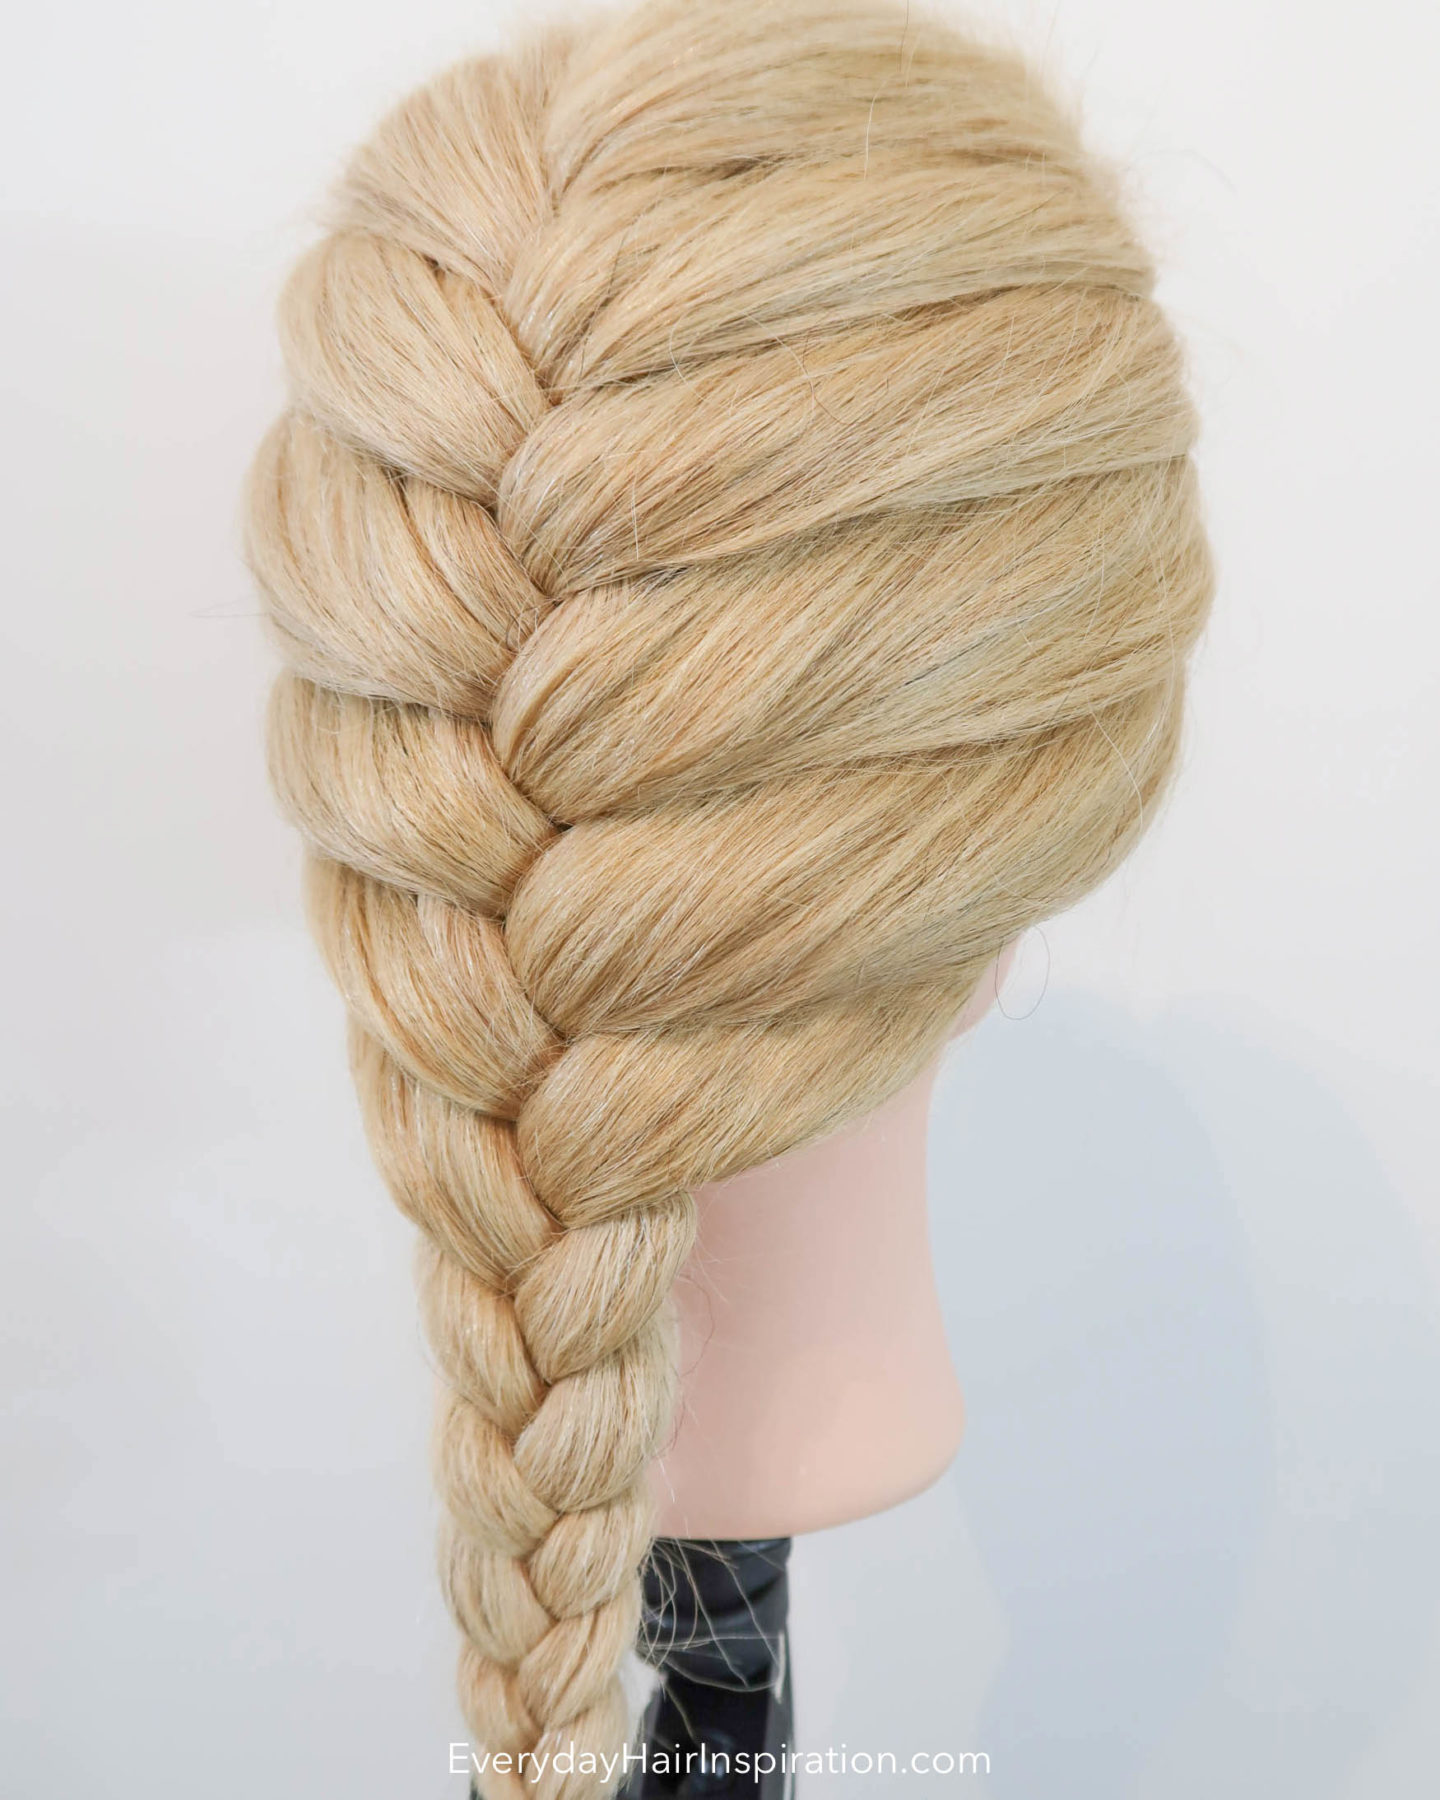 Blonde hairdresser doll. Slight side profile of a single French braid